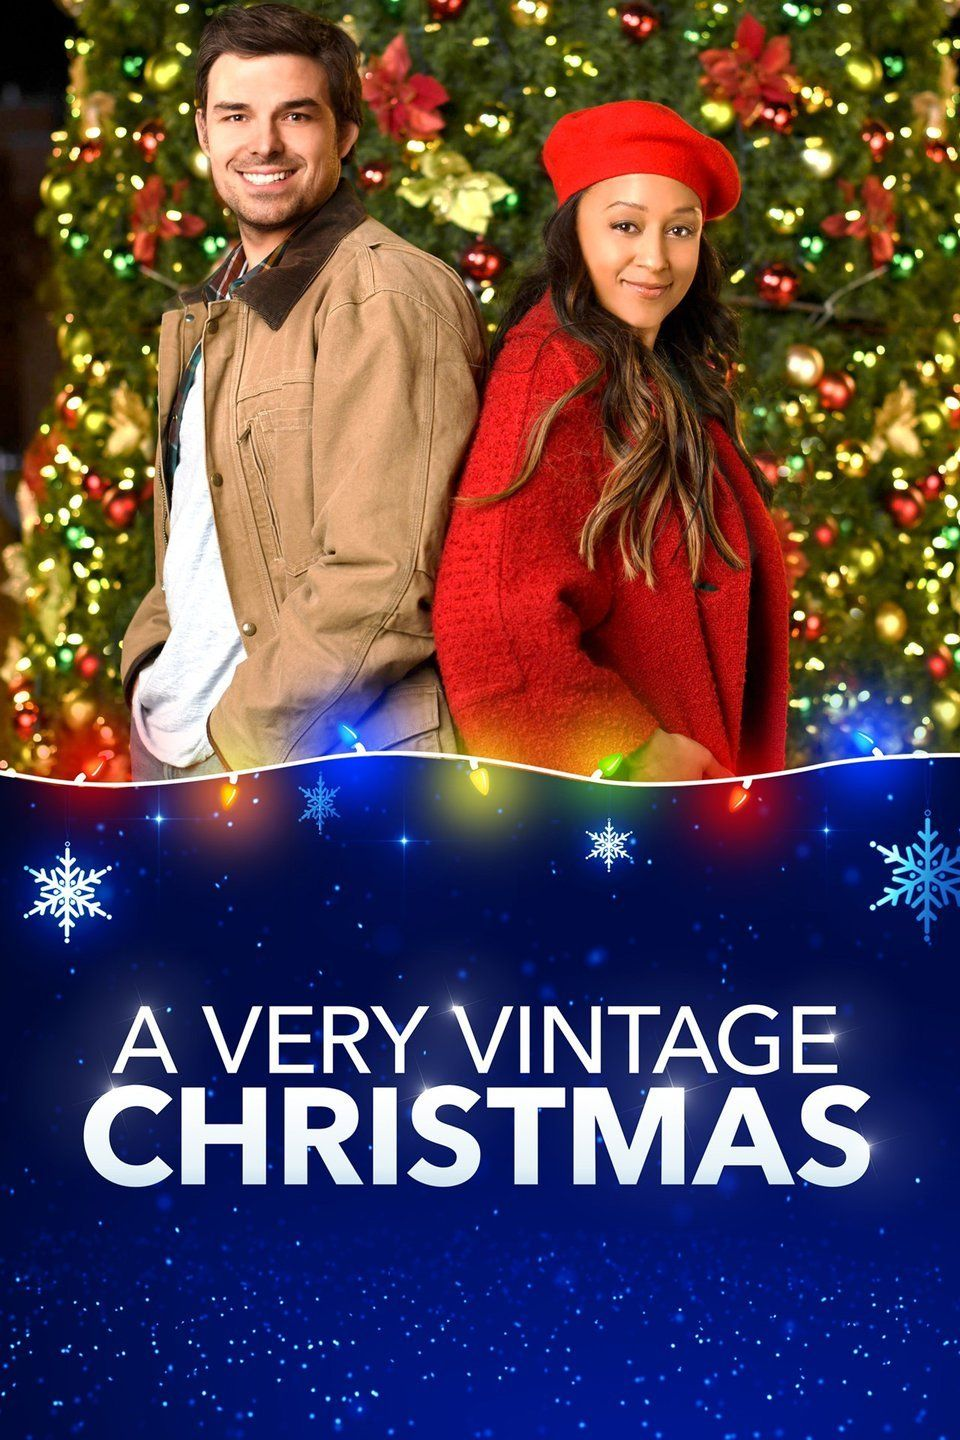 Pin by Molly Kellaway on Hallmark Movies and TV Series in